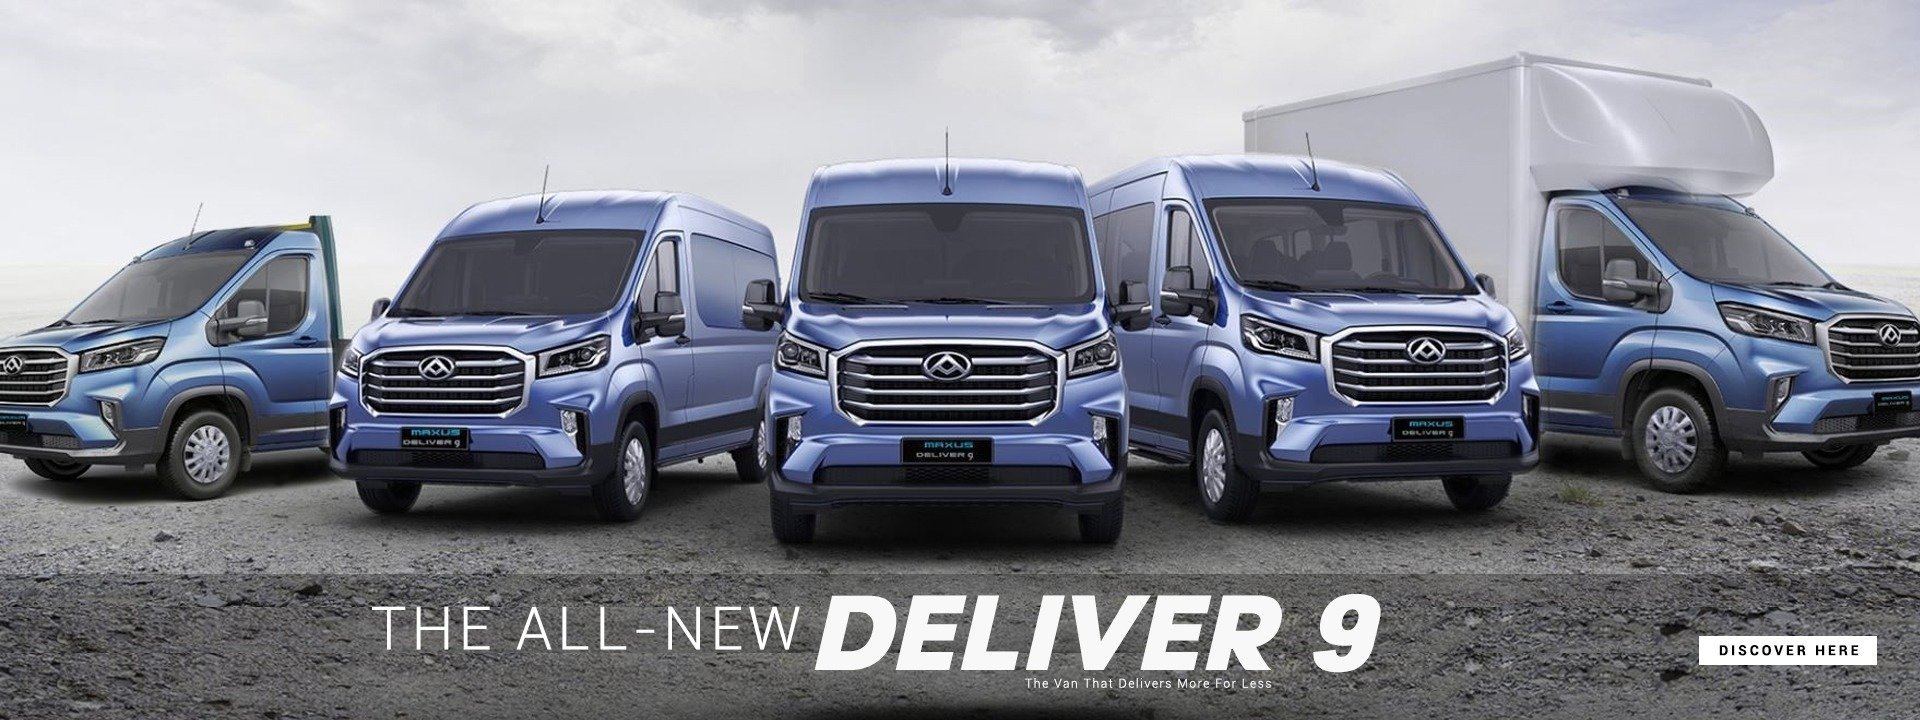 Carwise LDV - New Deliver 9